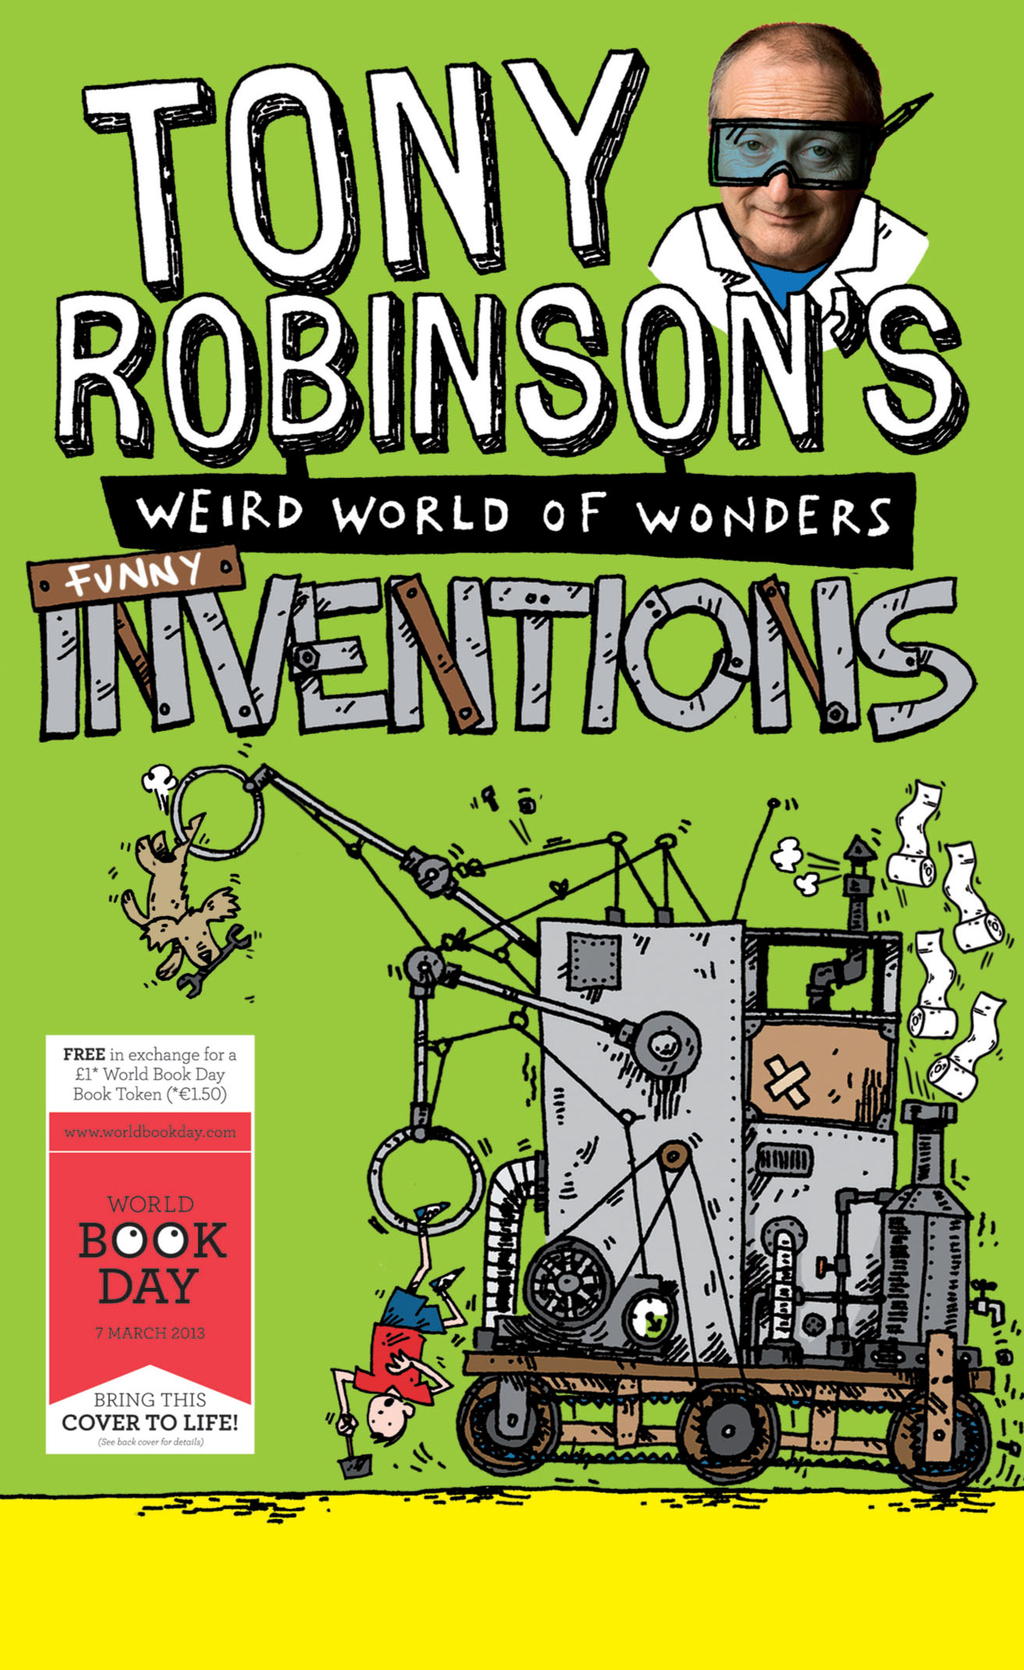 Tony Robinson's Weird World of Wonders - Inventions A World Book Day Book